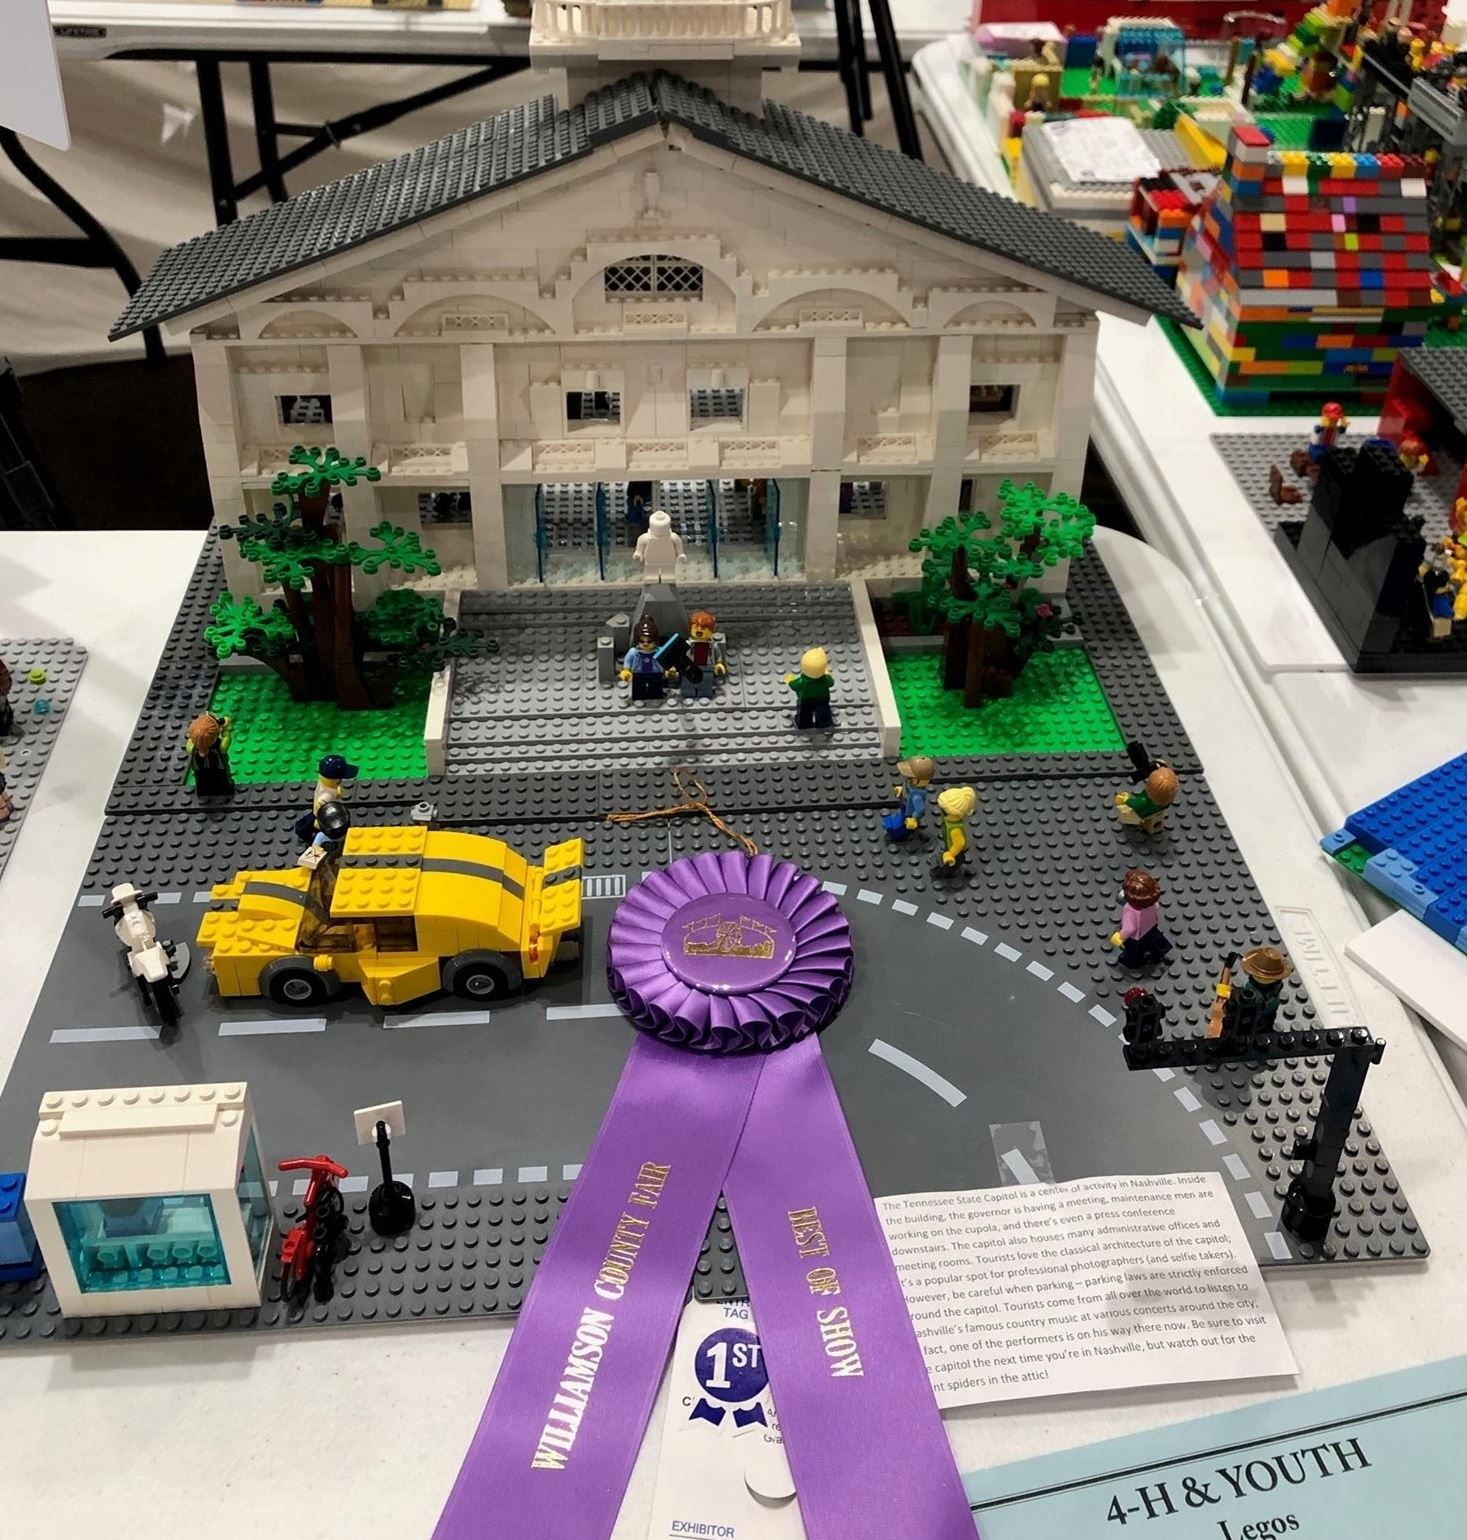 Best of Show Lego entry with link to enter 4-H & Youth divisions.